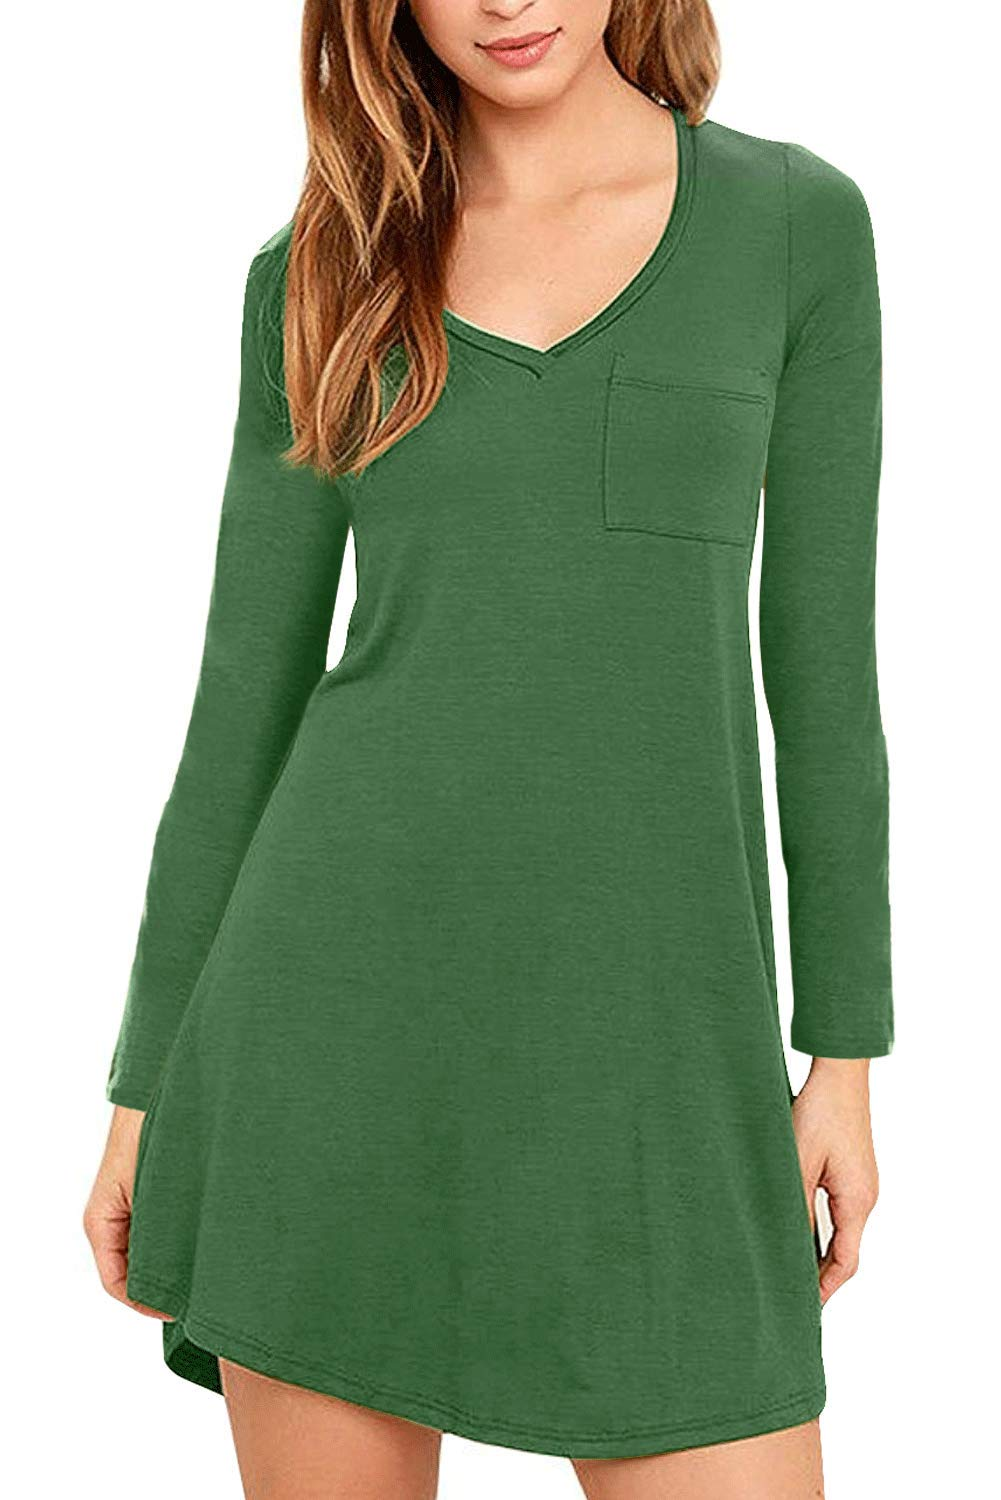 Eanklosco Women's Casual Dress V Neck Short/Long Sleeve T Shirt Dress with Pockets (L/UK 12, Green)